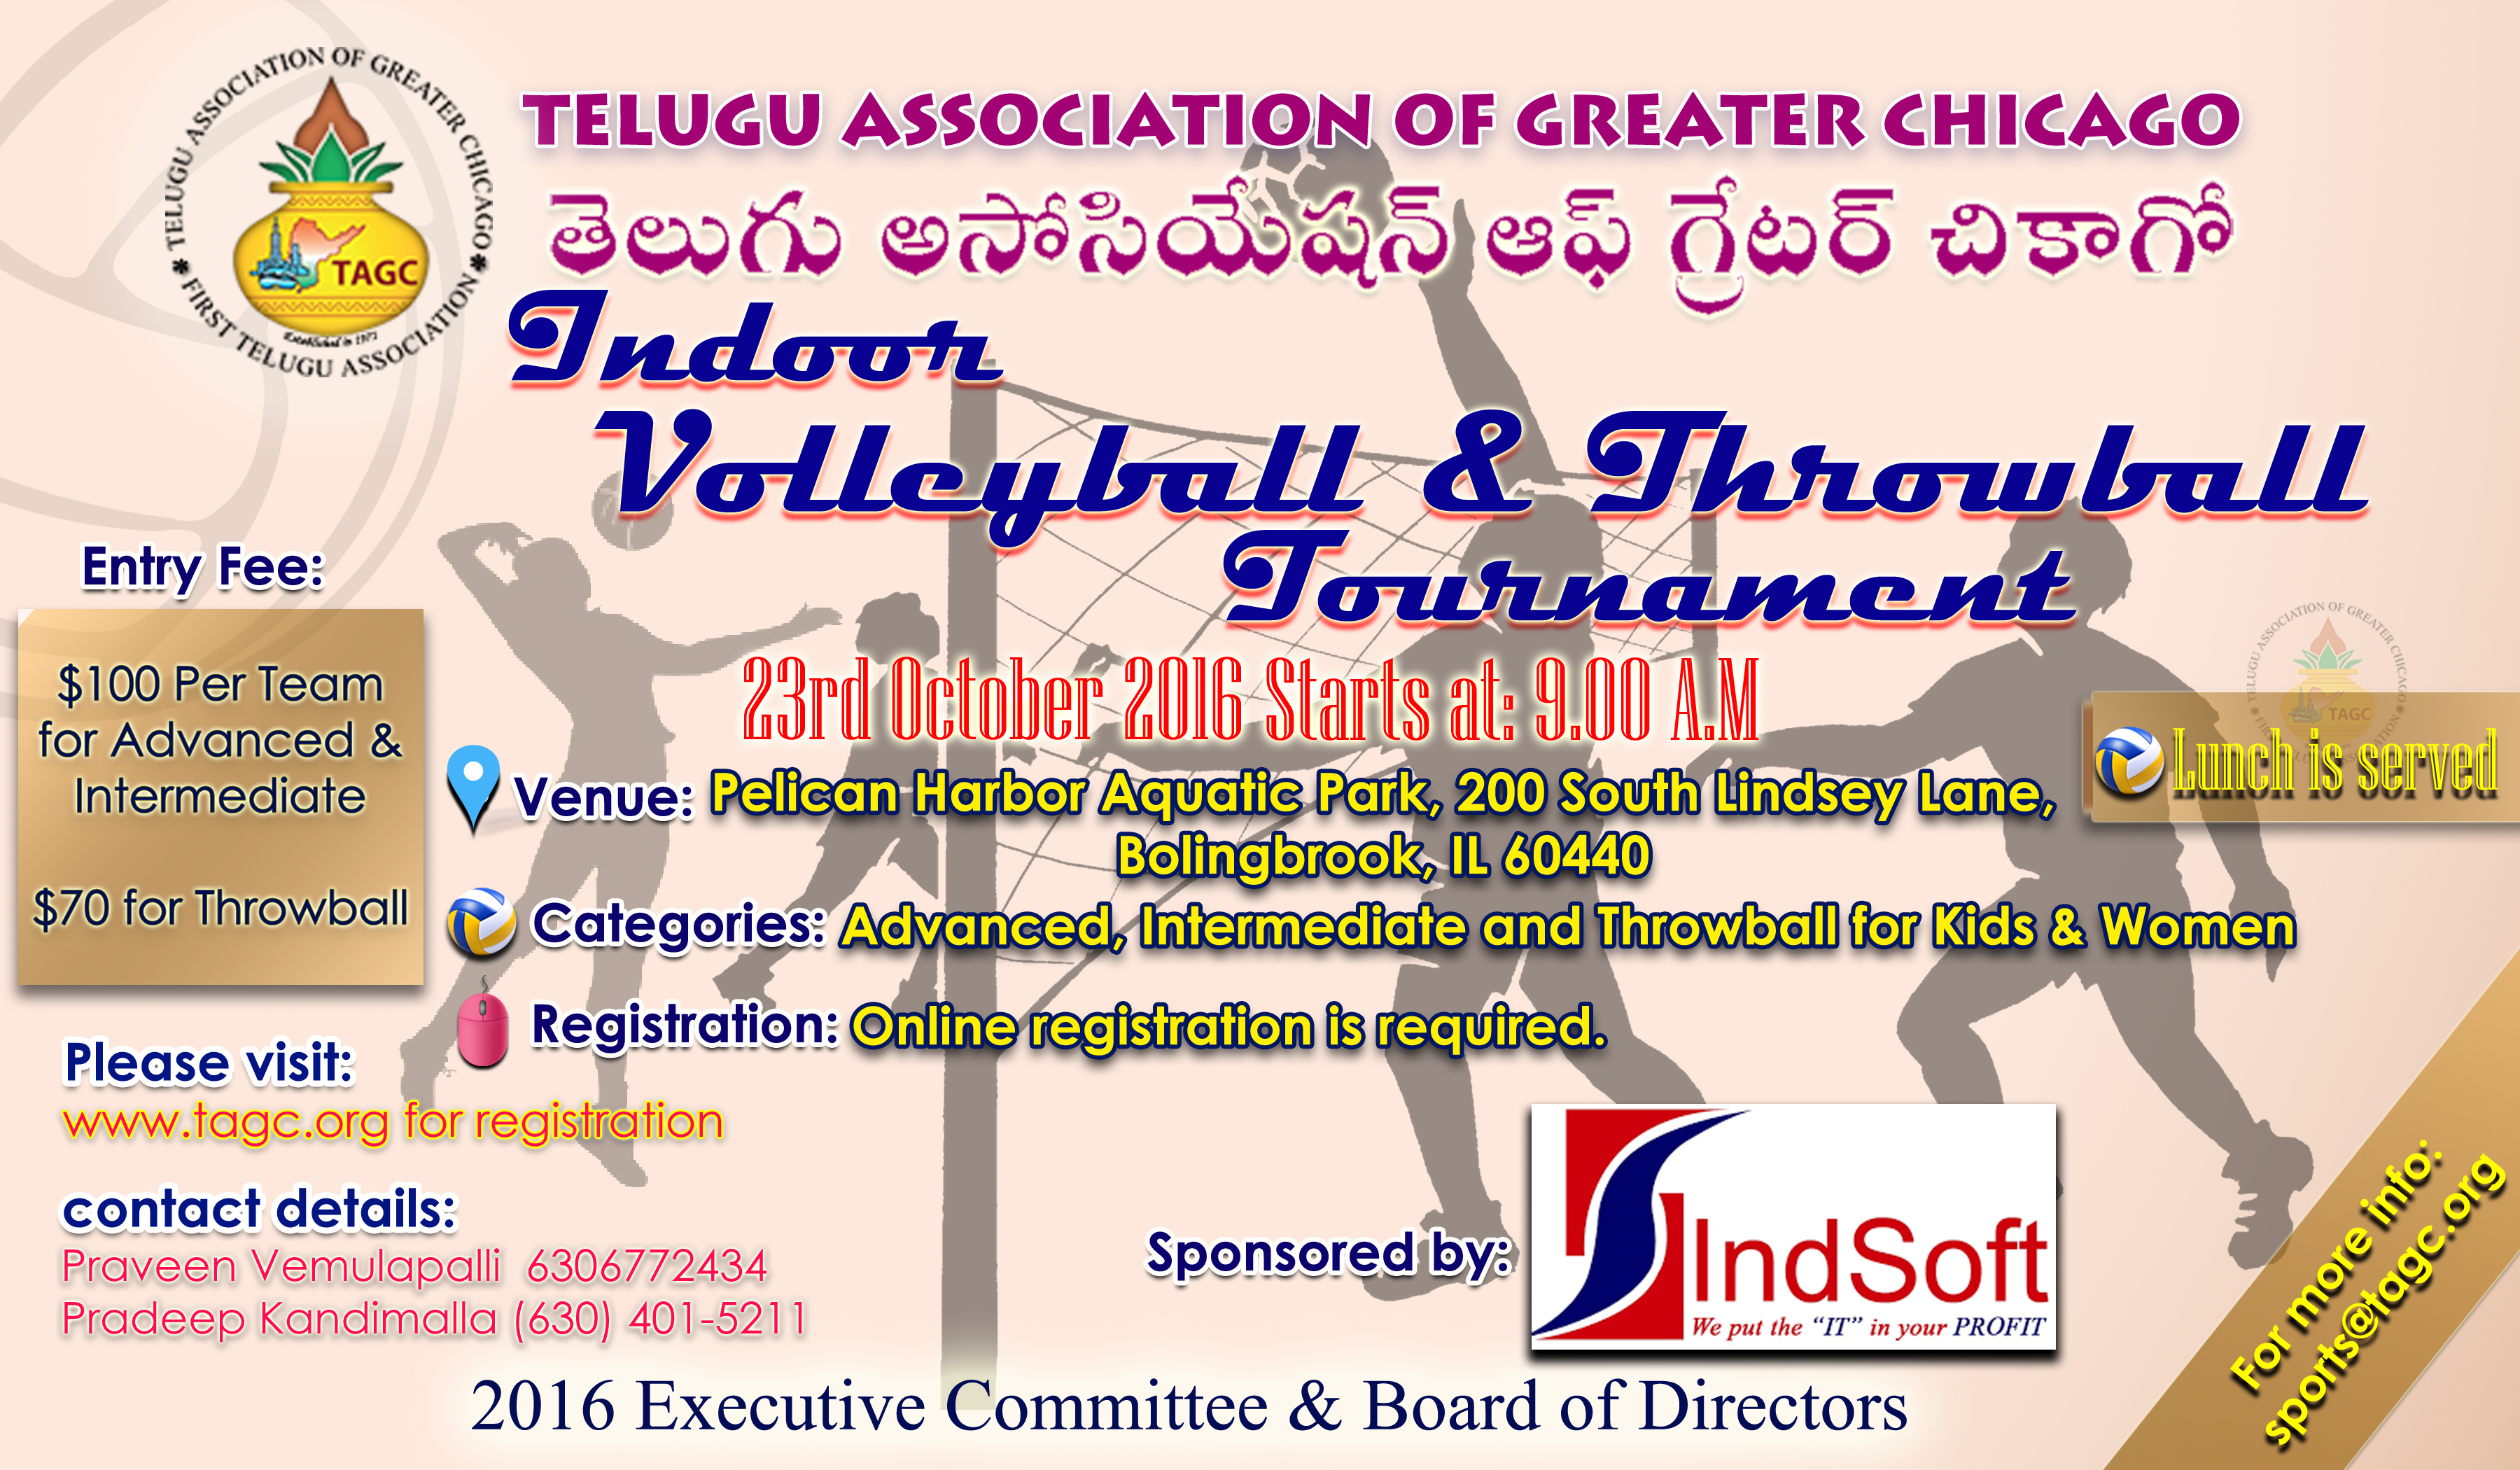 2016 TAGC Volleyball & Throwball Tournament